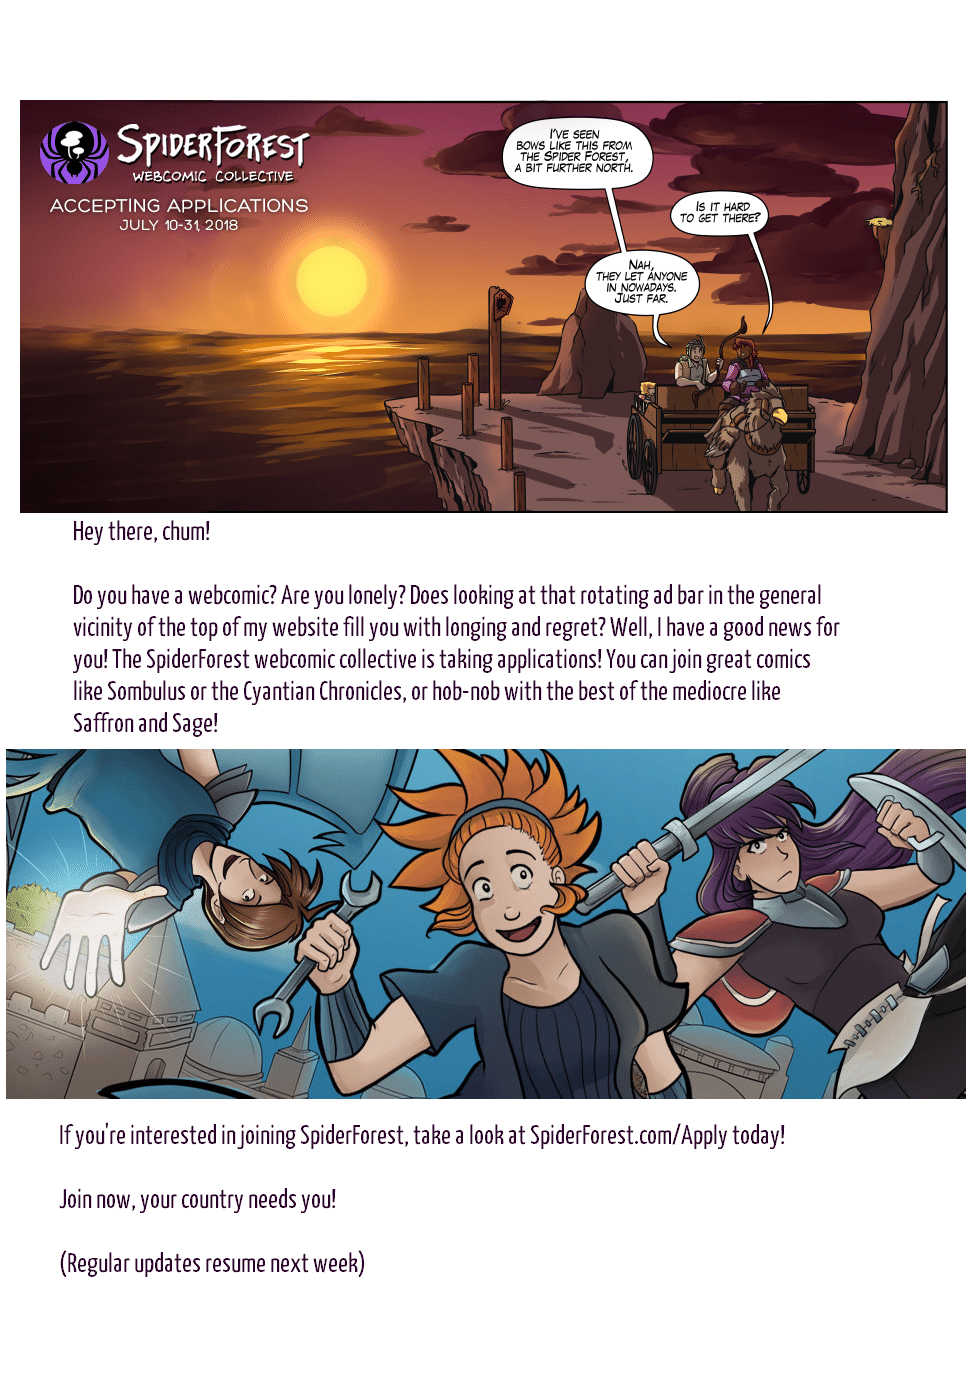 The second image is from Sombulus, whose creator helped me with the top graphic. Thank her by checking out her comic!